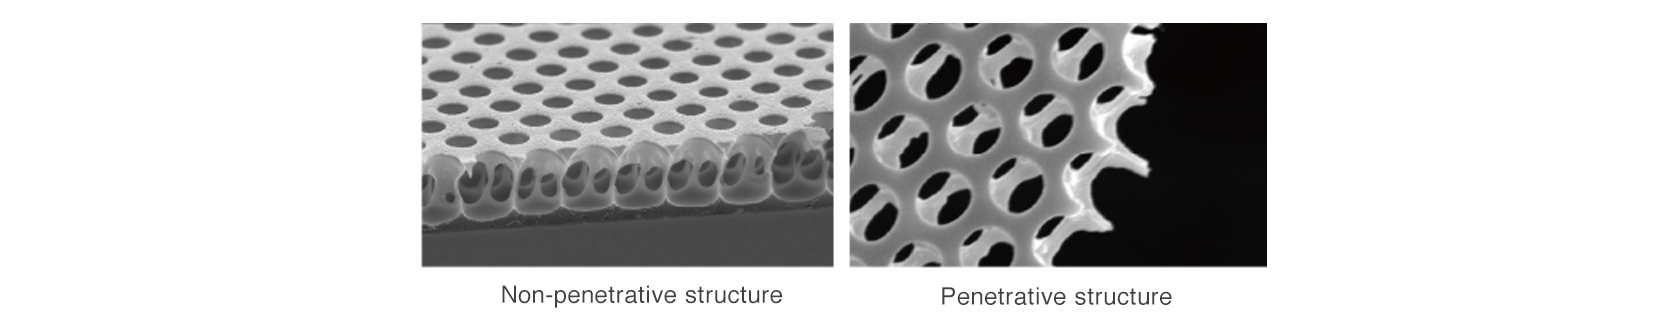 [image] A variety of polymers allow for the formation of 3D structural film